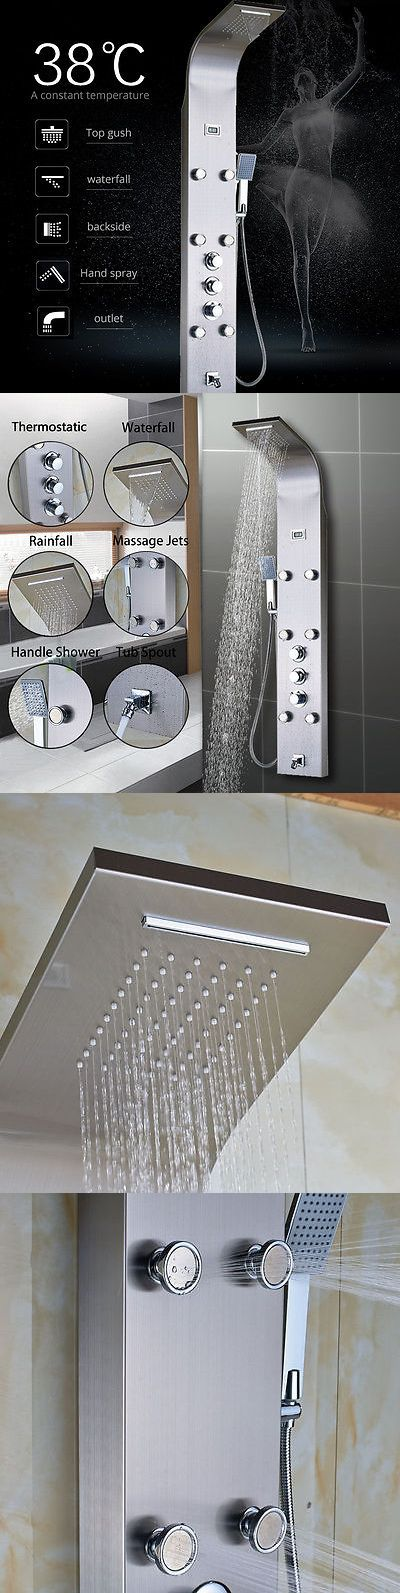 Shower Panels and Massagers 121849: Stainless Steel Thermostatic Shower Tower Panel Message Jets W Hand Shower Tap -> BUY IT NOW ONLY: $115 on eBay!